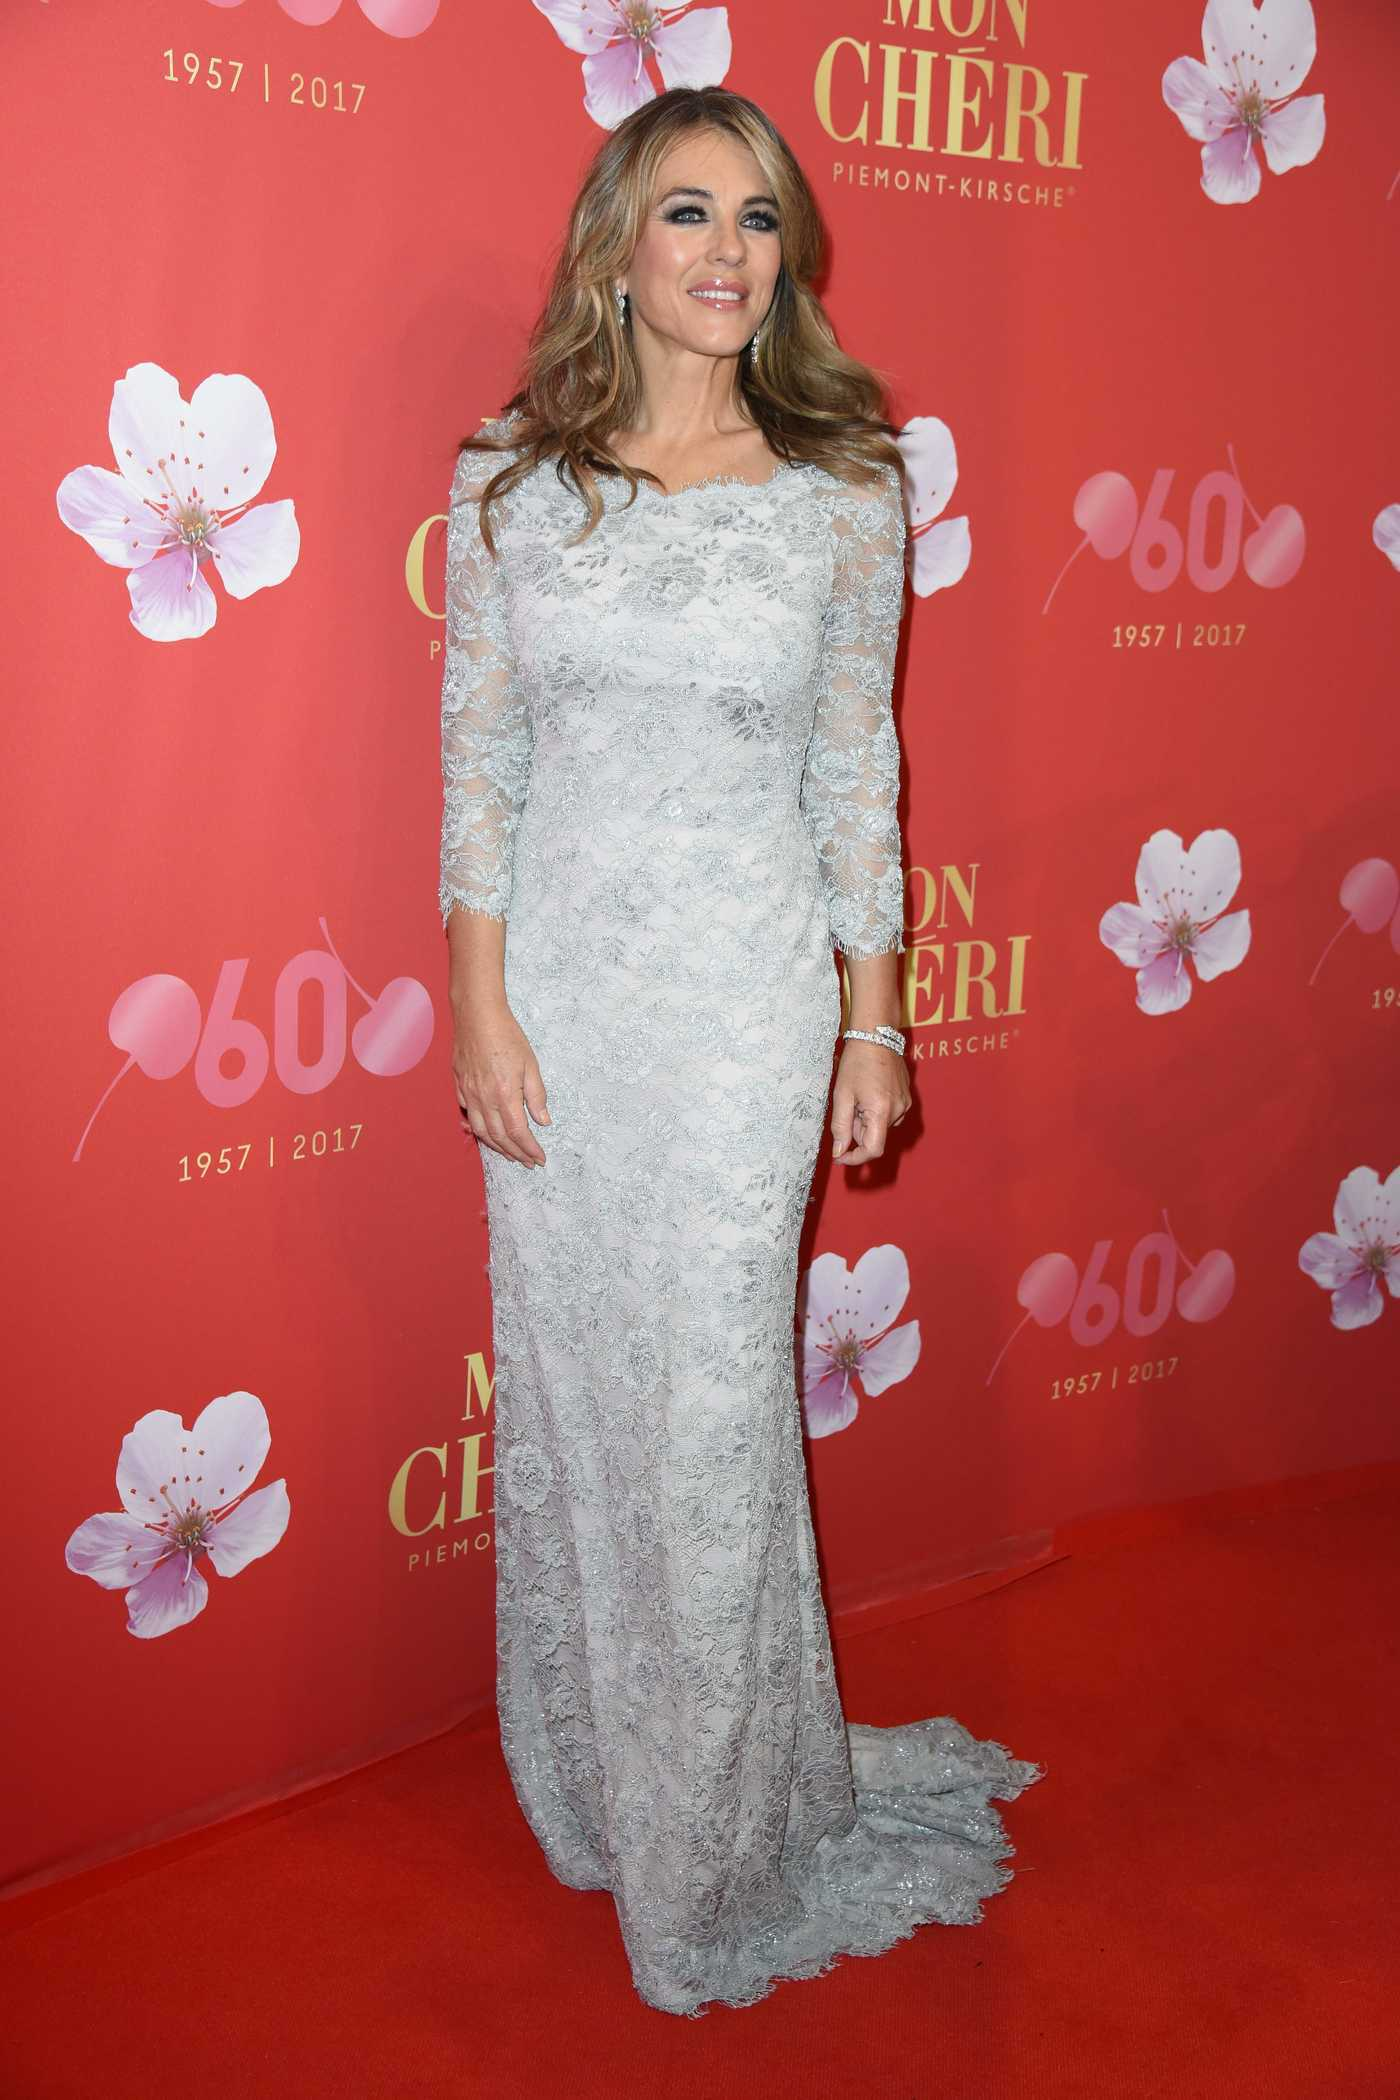 Elizabeth Hurley at the Mon Cheri Barbara's Day in Munich 11/30/2017